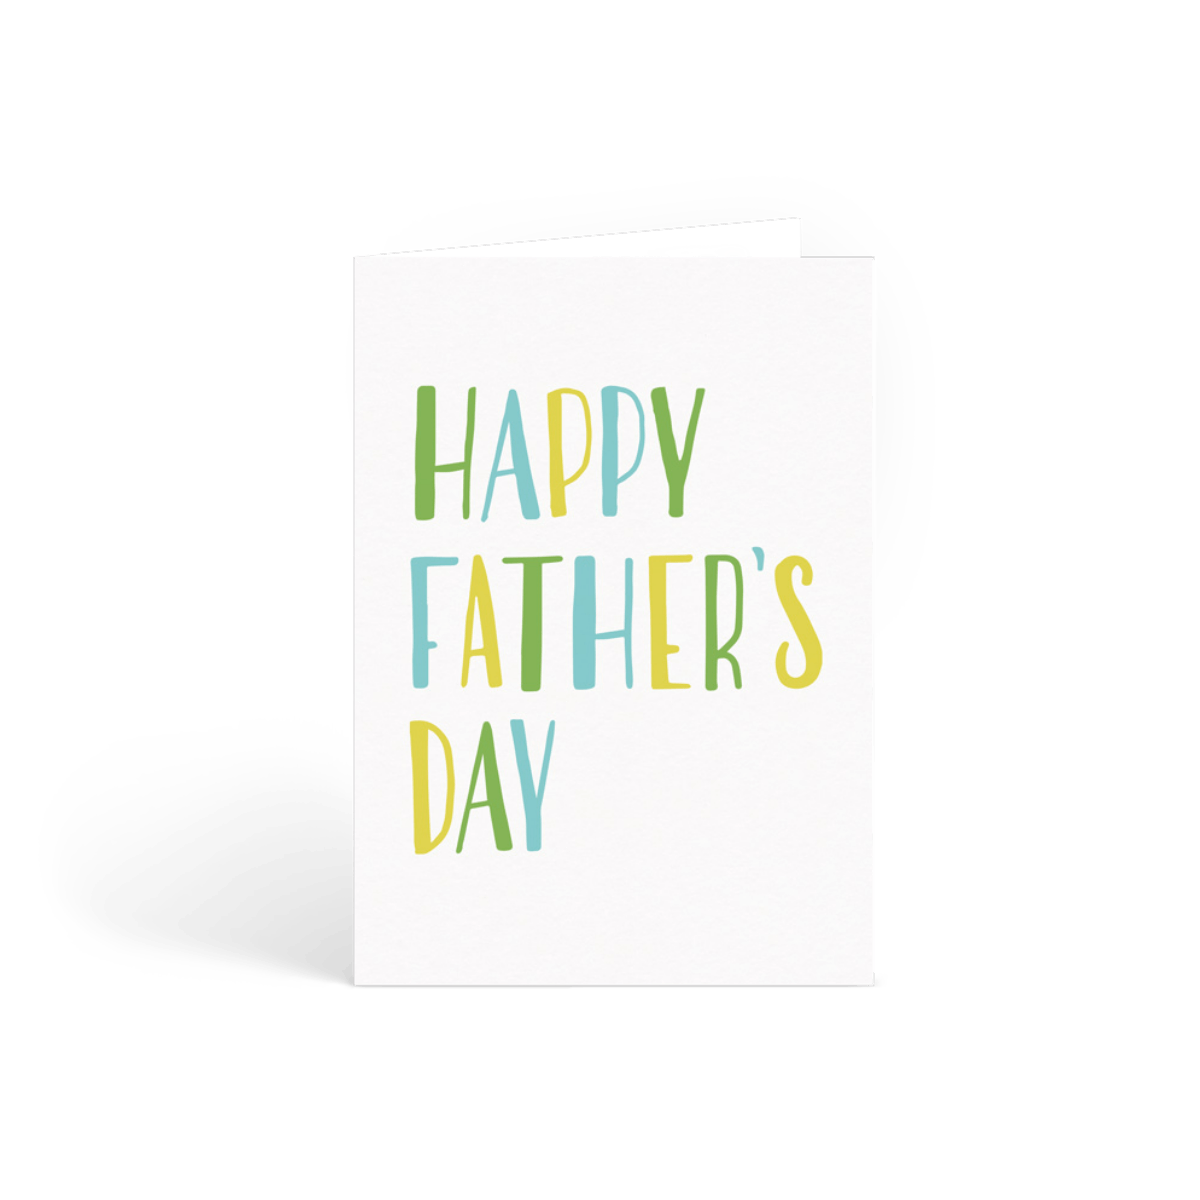 Https%3a%2f%2fwww.papier.com%2fproduct image%2f17927%2f2%2fhappy father s day 4676 front 1581453326.png?ixlib=rb 1.1